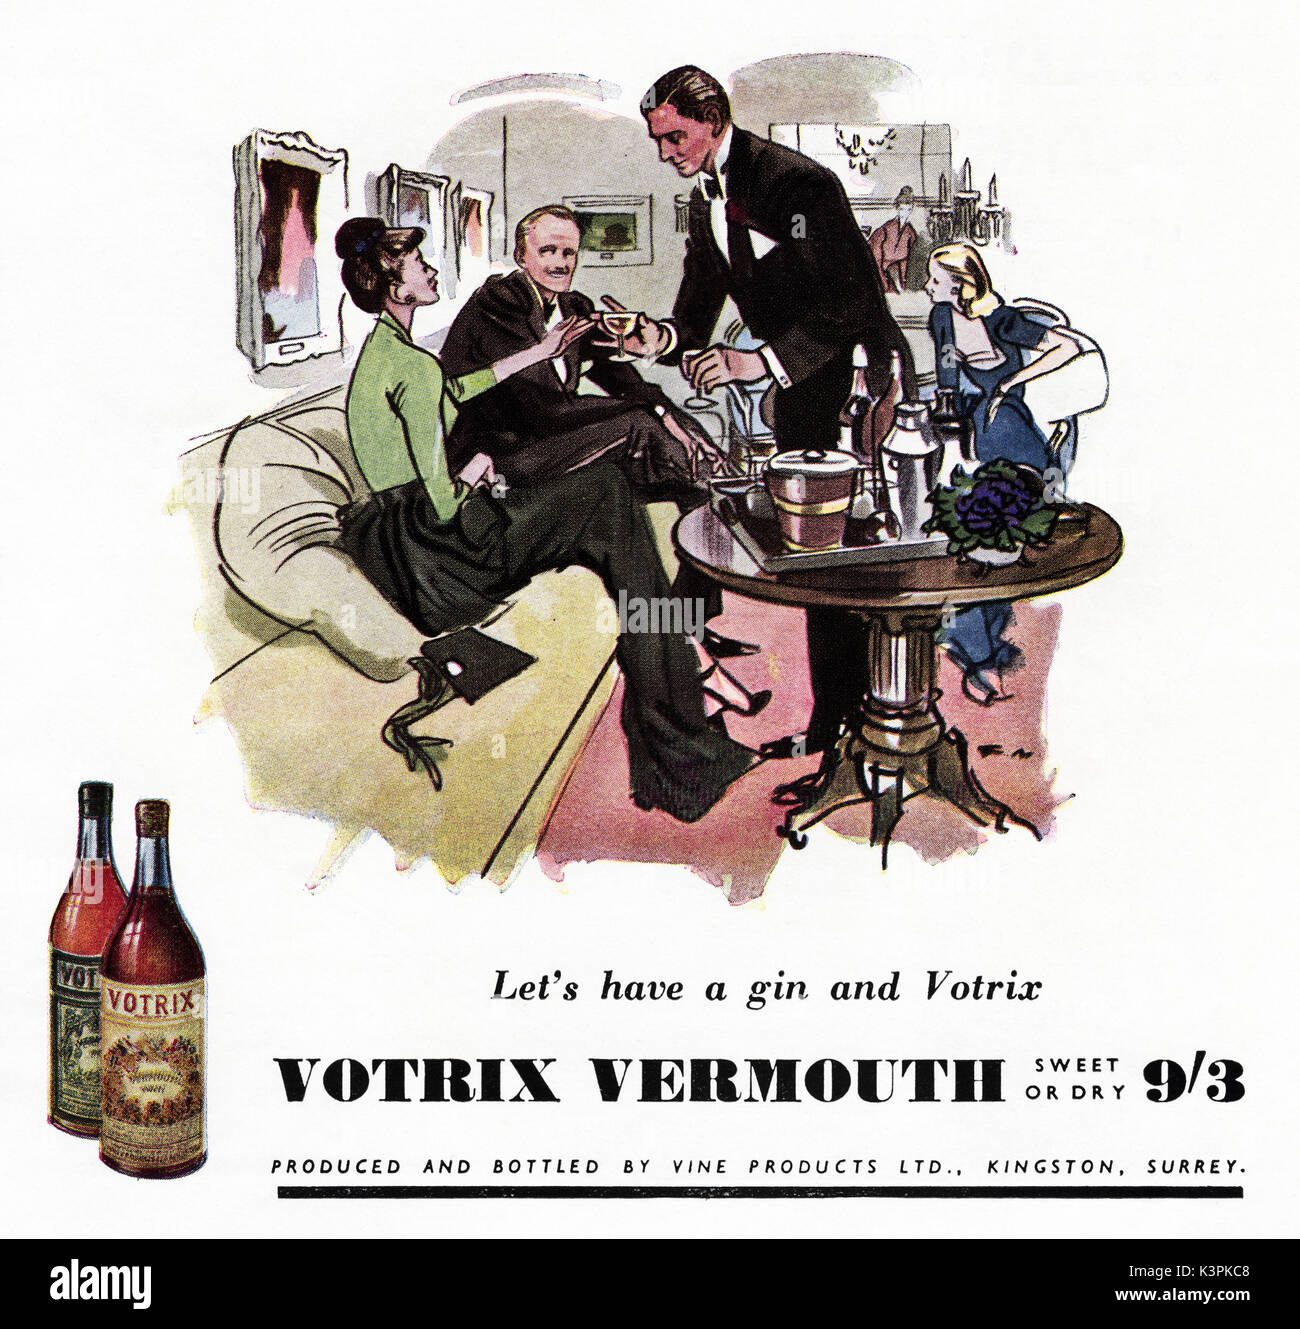 1940s old vintage original advert advertising Votrix Vermouth in magazine circa 1947 when supplies were still restricted under post-war rationing - Stock Image